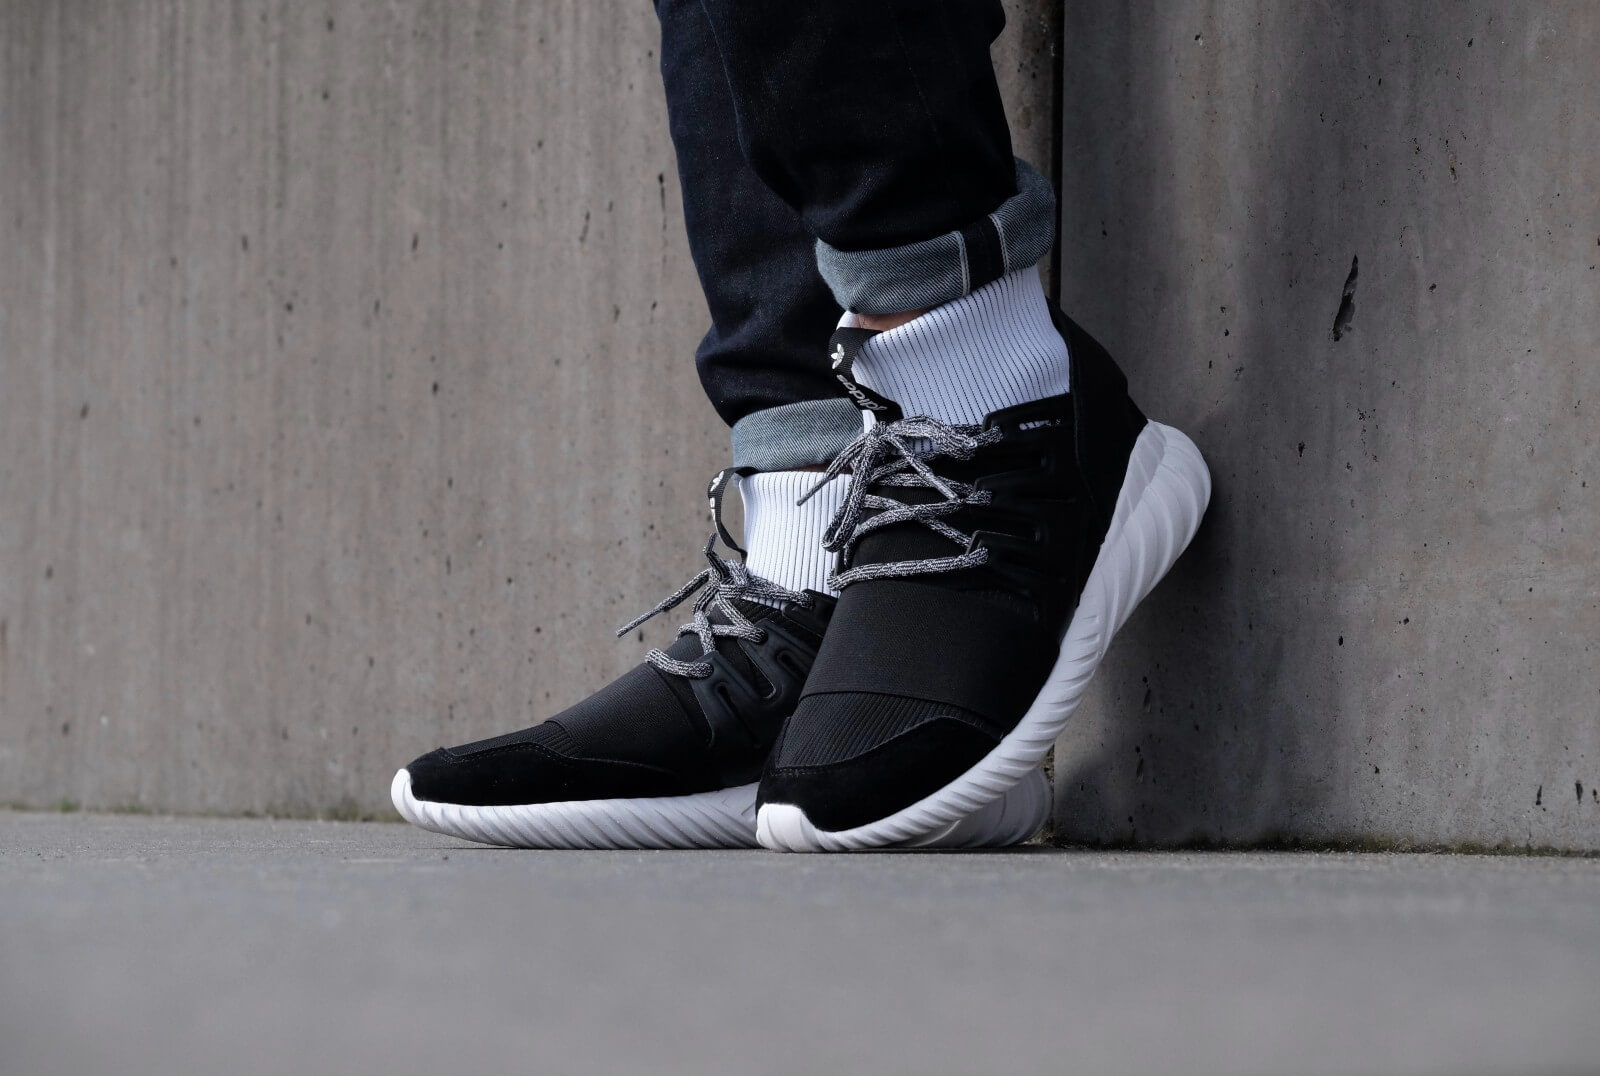 adidas Originals Tubular Runner Men's Running Shoes